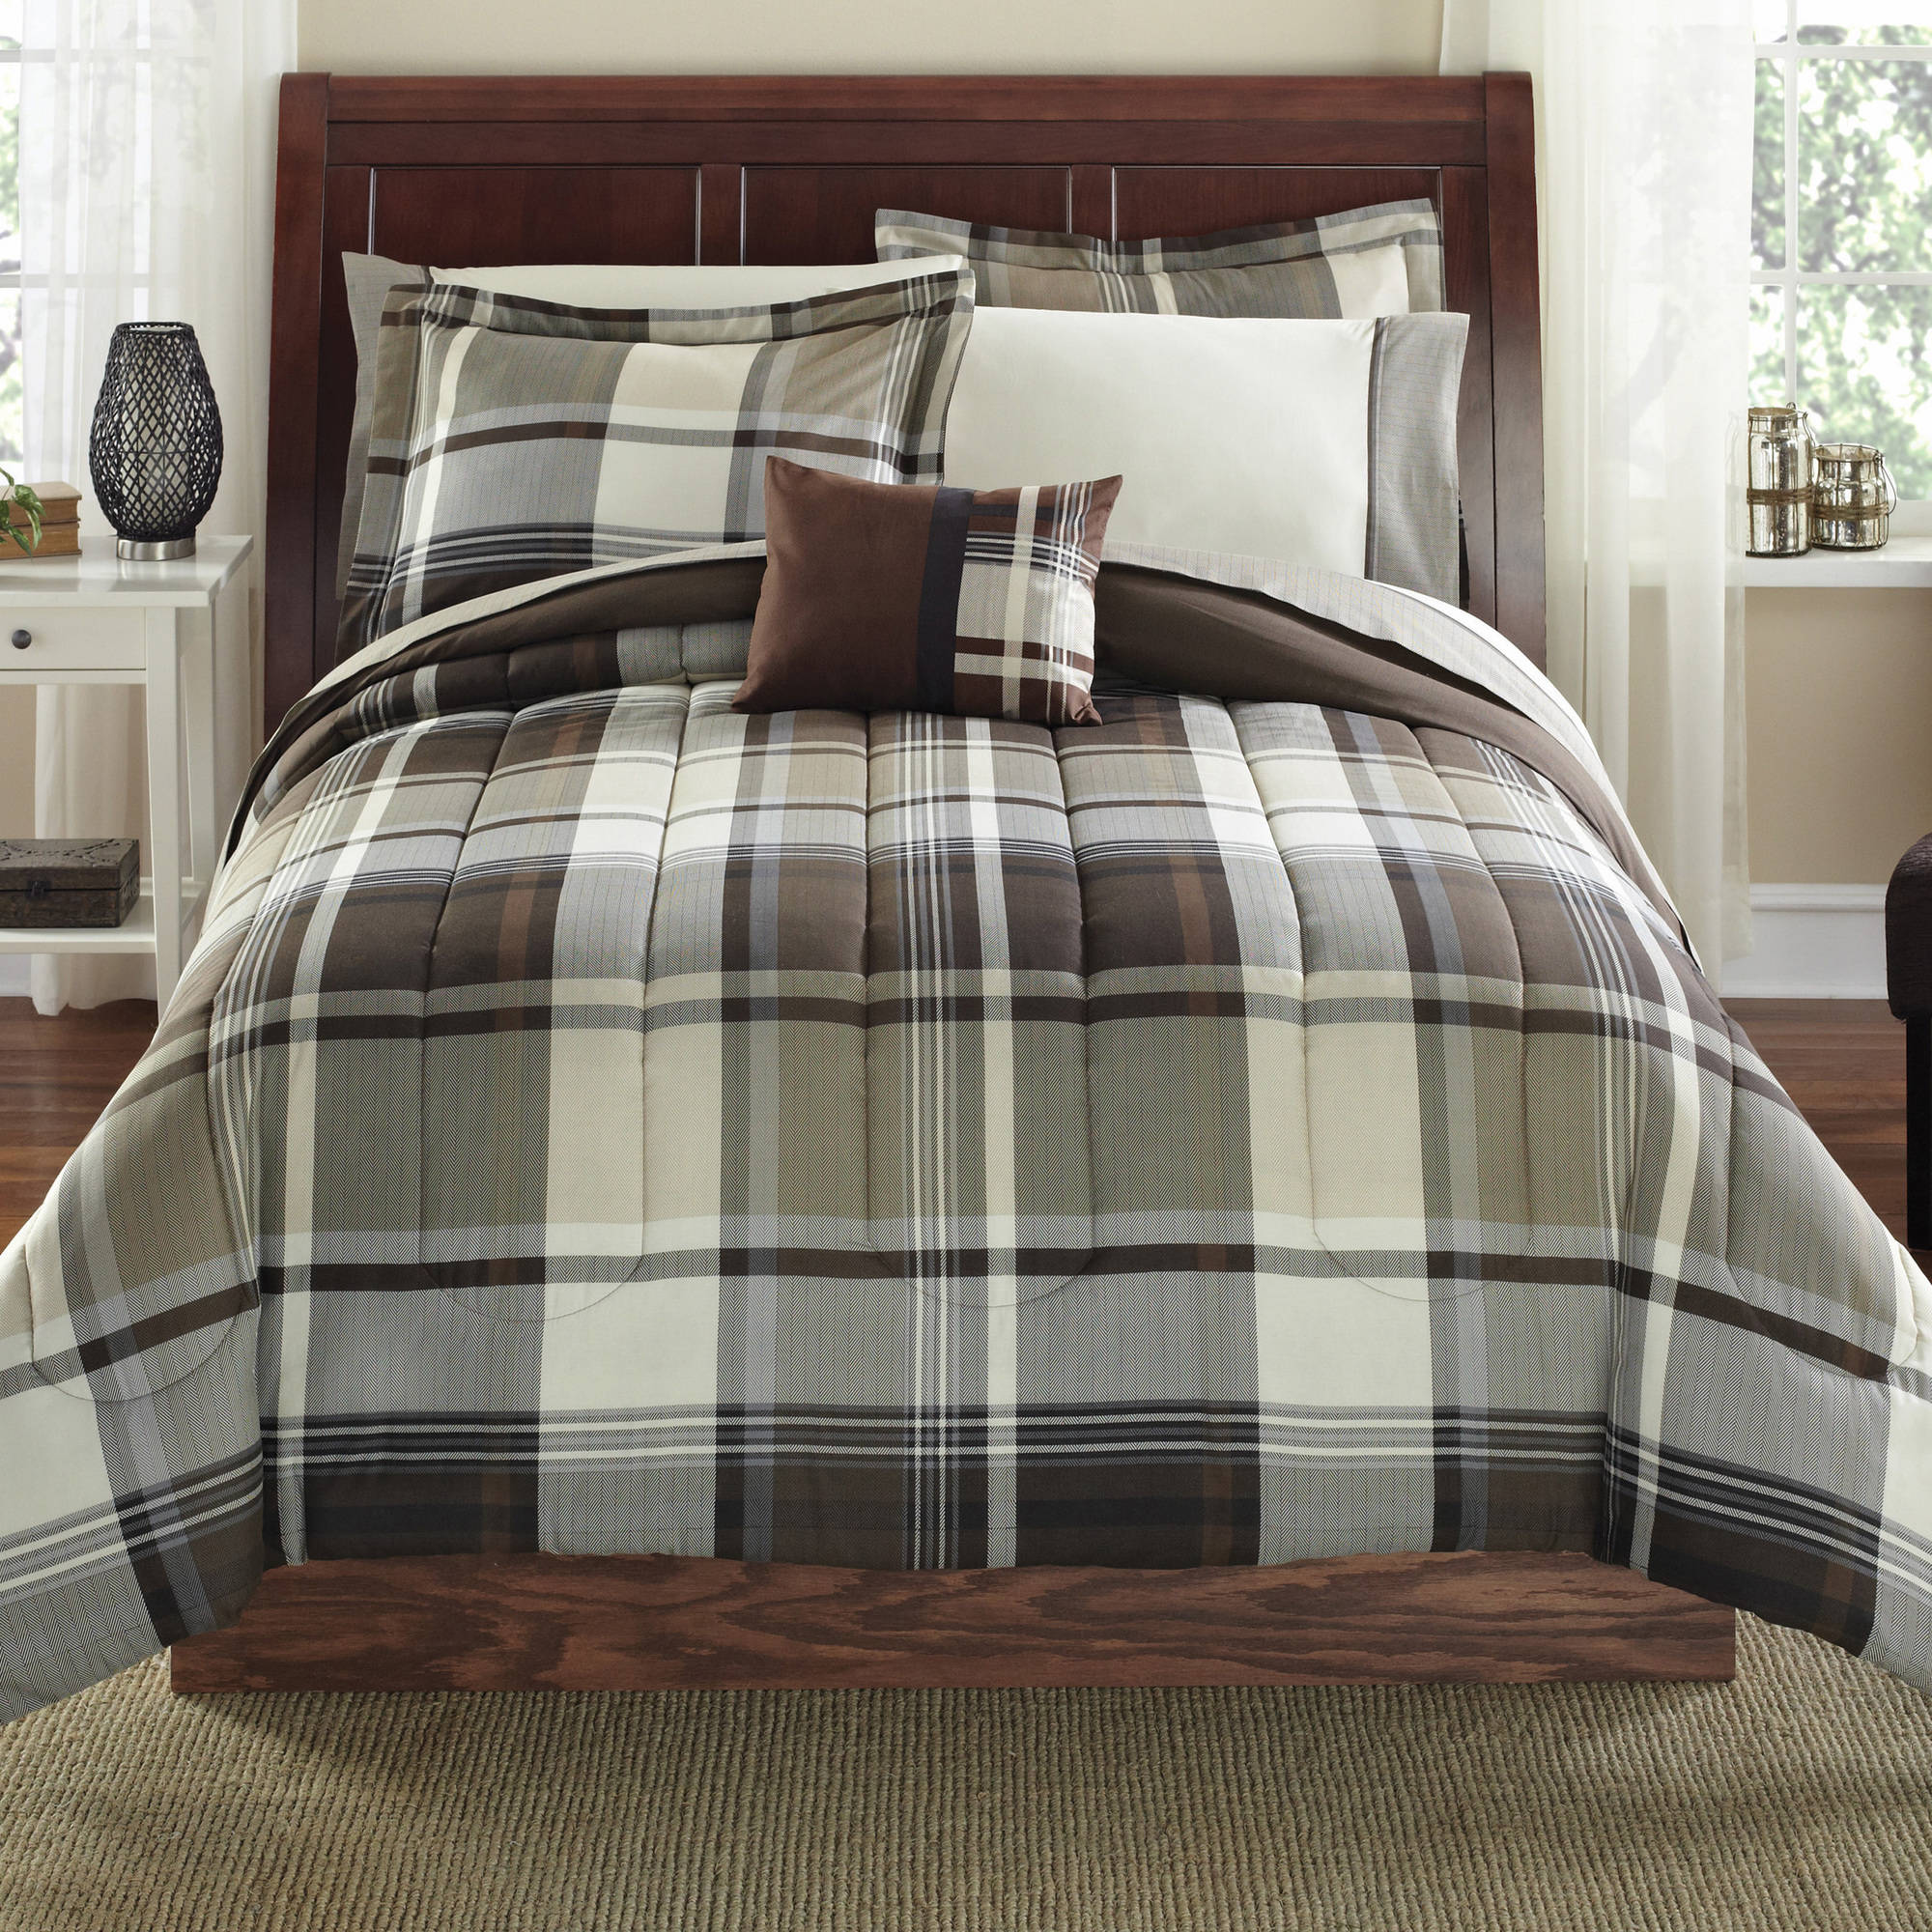 Superbe Mainstays Bed In A Bag Bedding Comforter Set, Brown Plaid, Multiple Sizes    Walmart.com